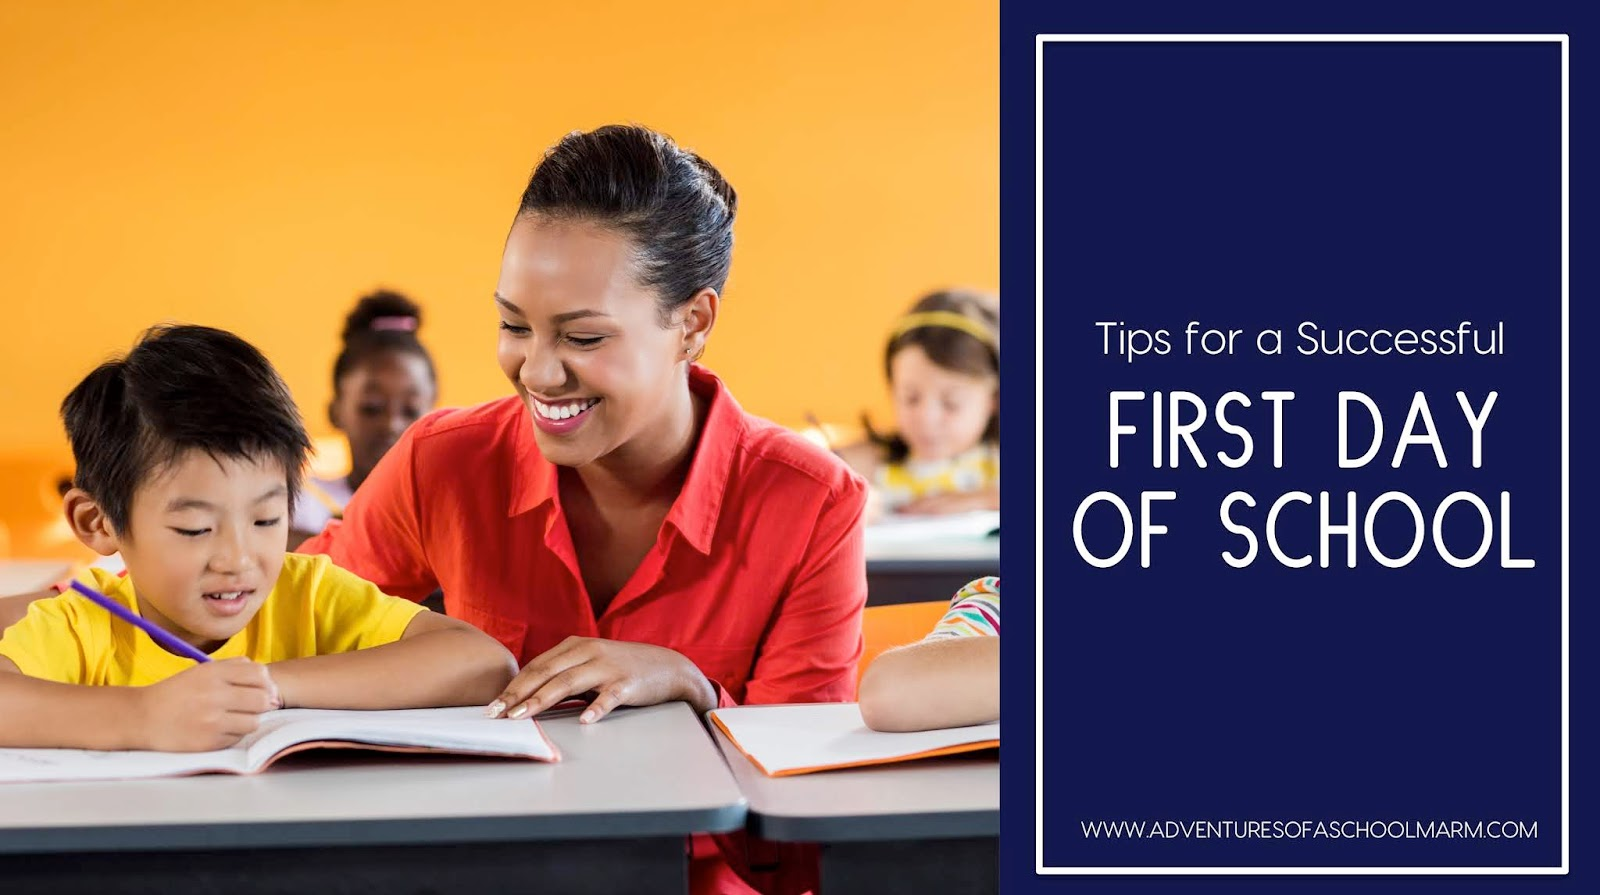 The key to mastering your first day is keep it simple, stay flexible, and be over-prepared. As a veteran teacher of more than 15 years, I am going to share some of my best tips so you can know that you are truly prepared!